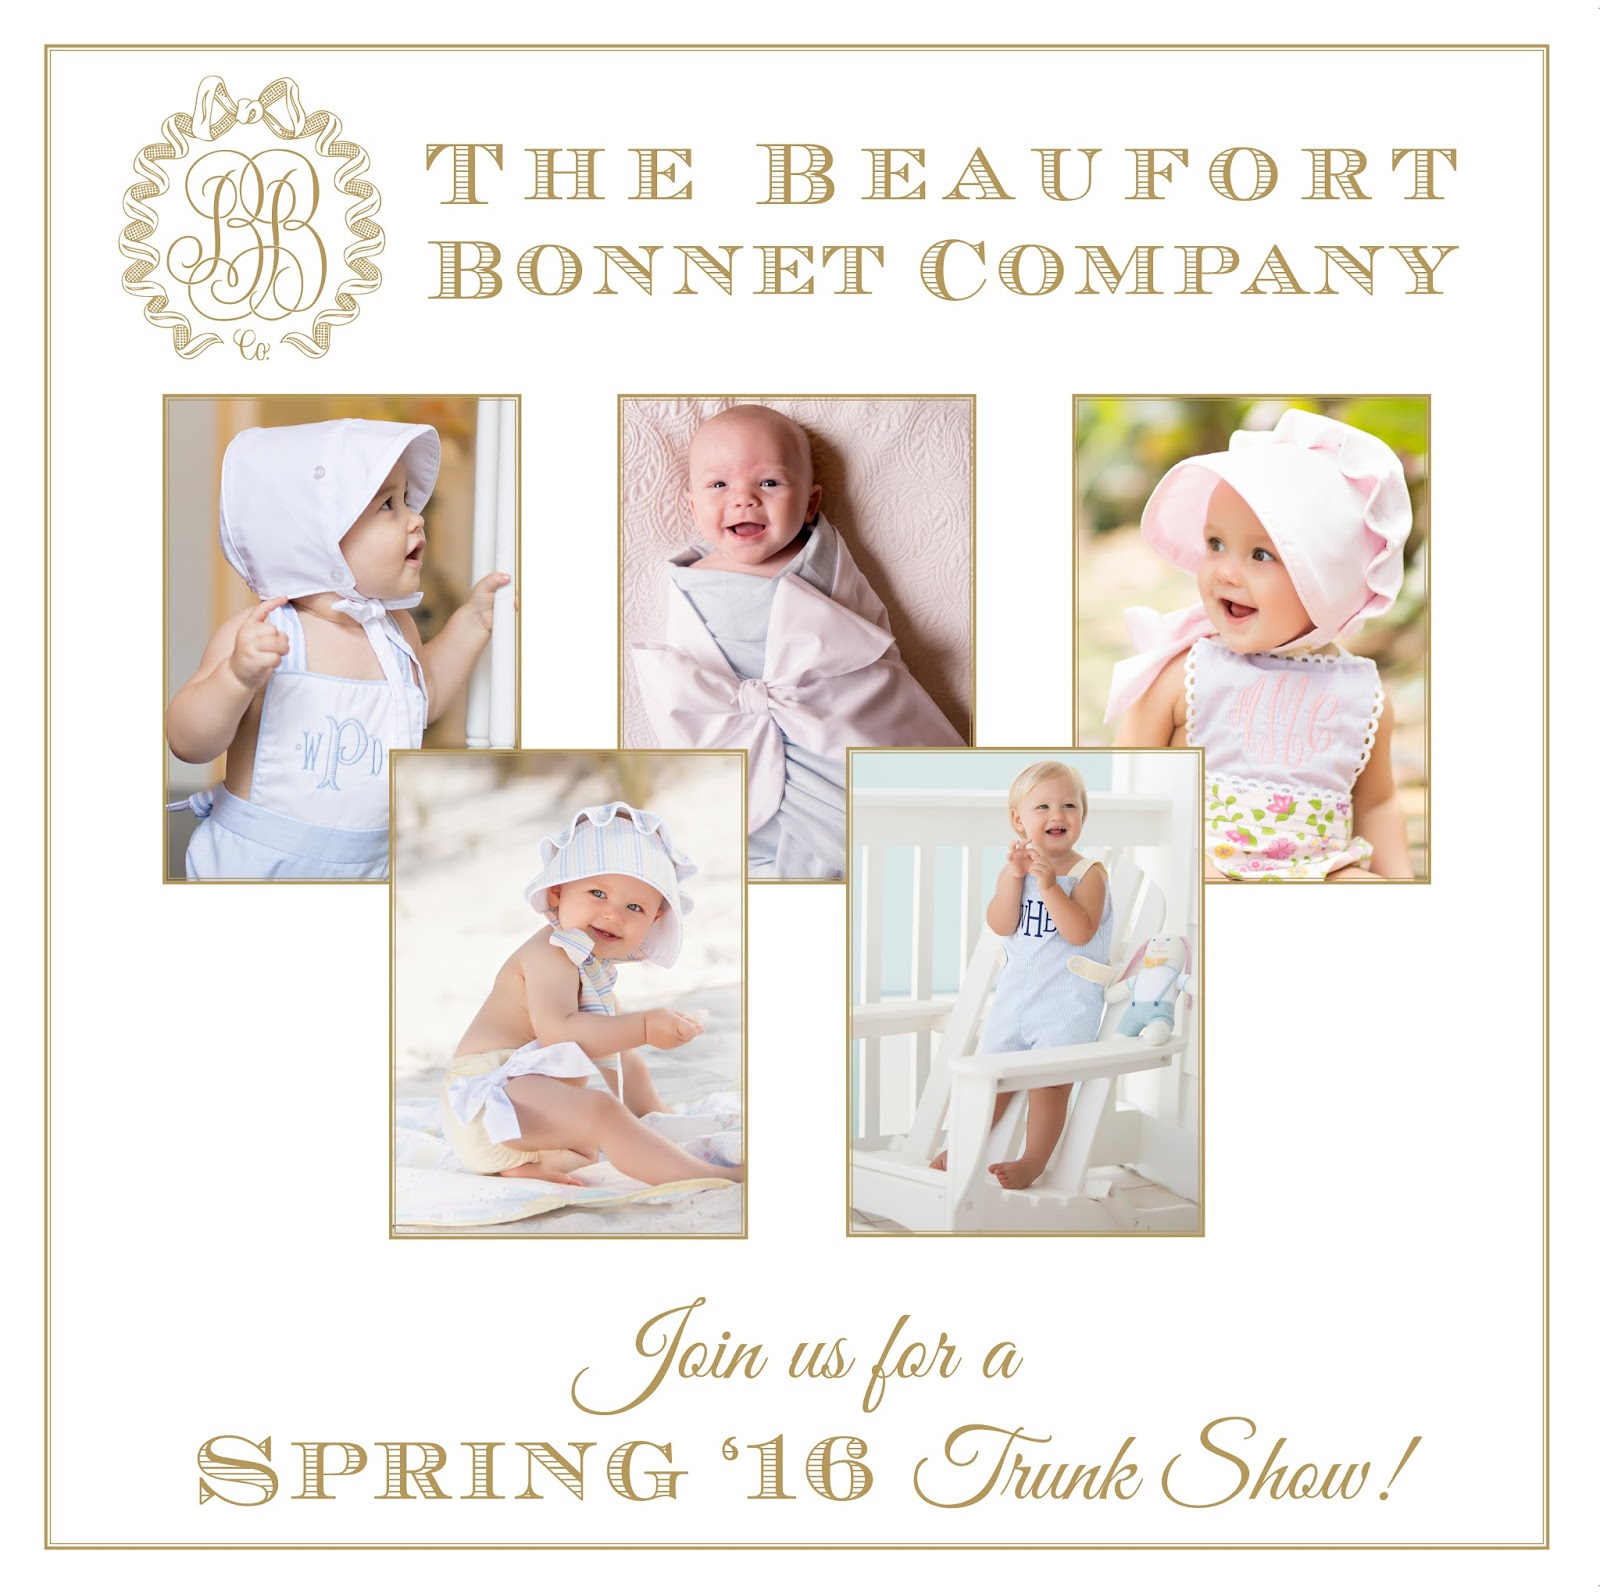 f89a609c15 Children's Clothes | The Beaufort Bonnet Company - Home of Malones